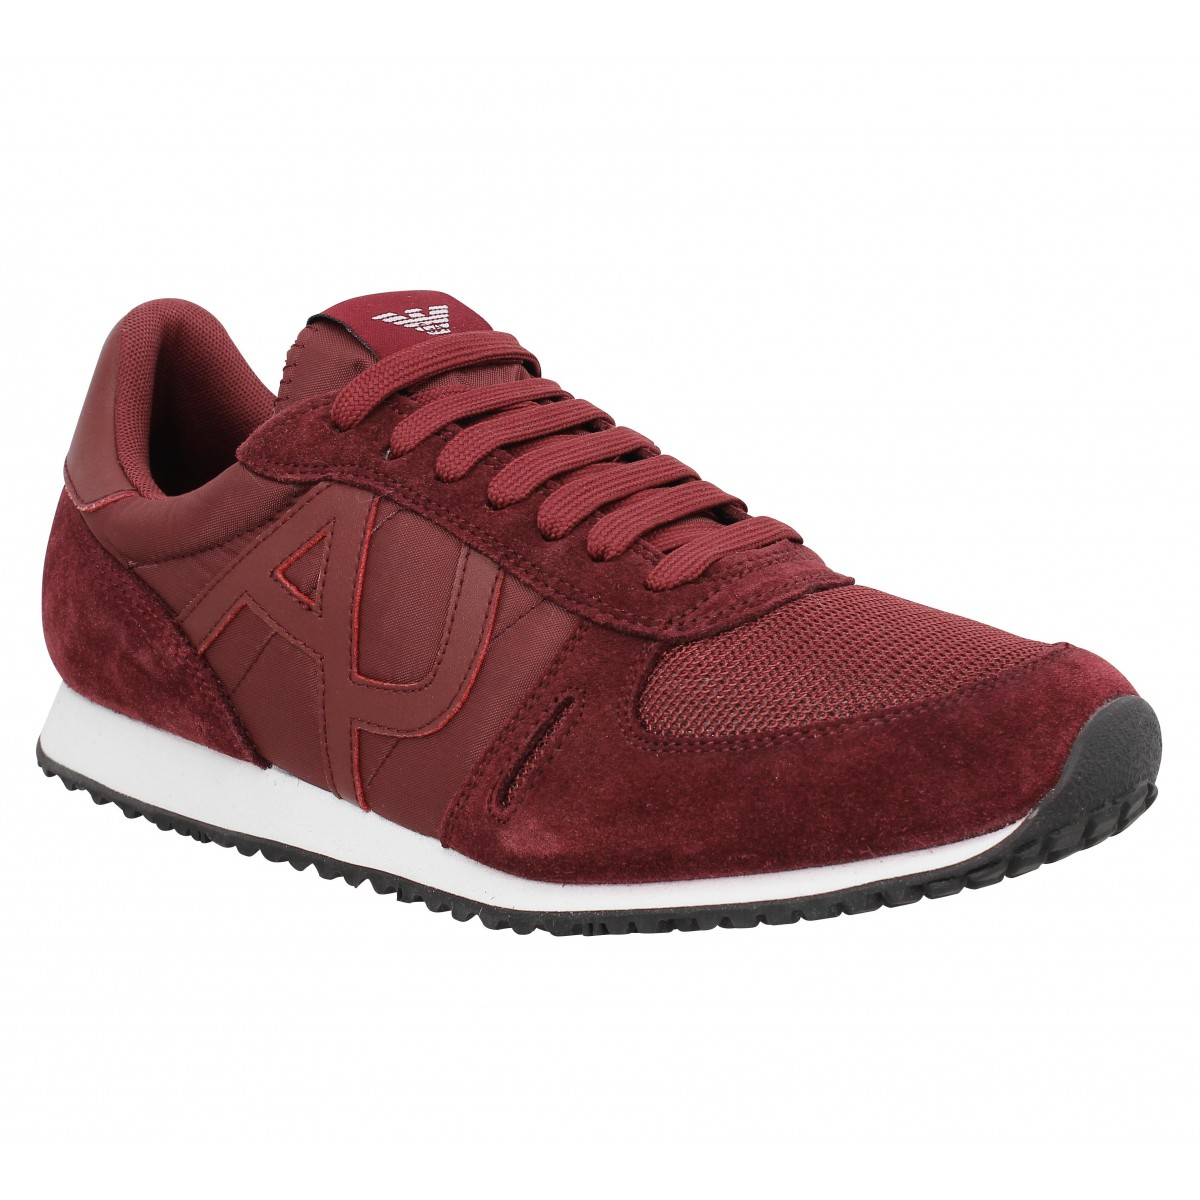 Baskets ARMANI JEANS 5027 Bordeaux